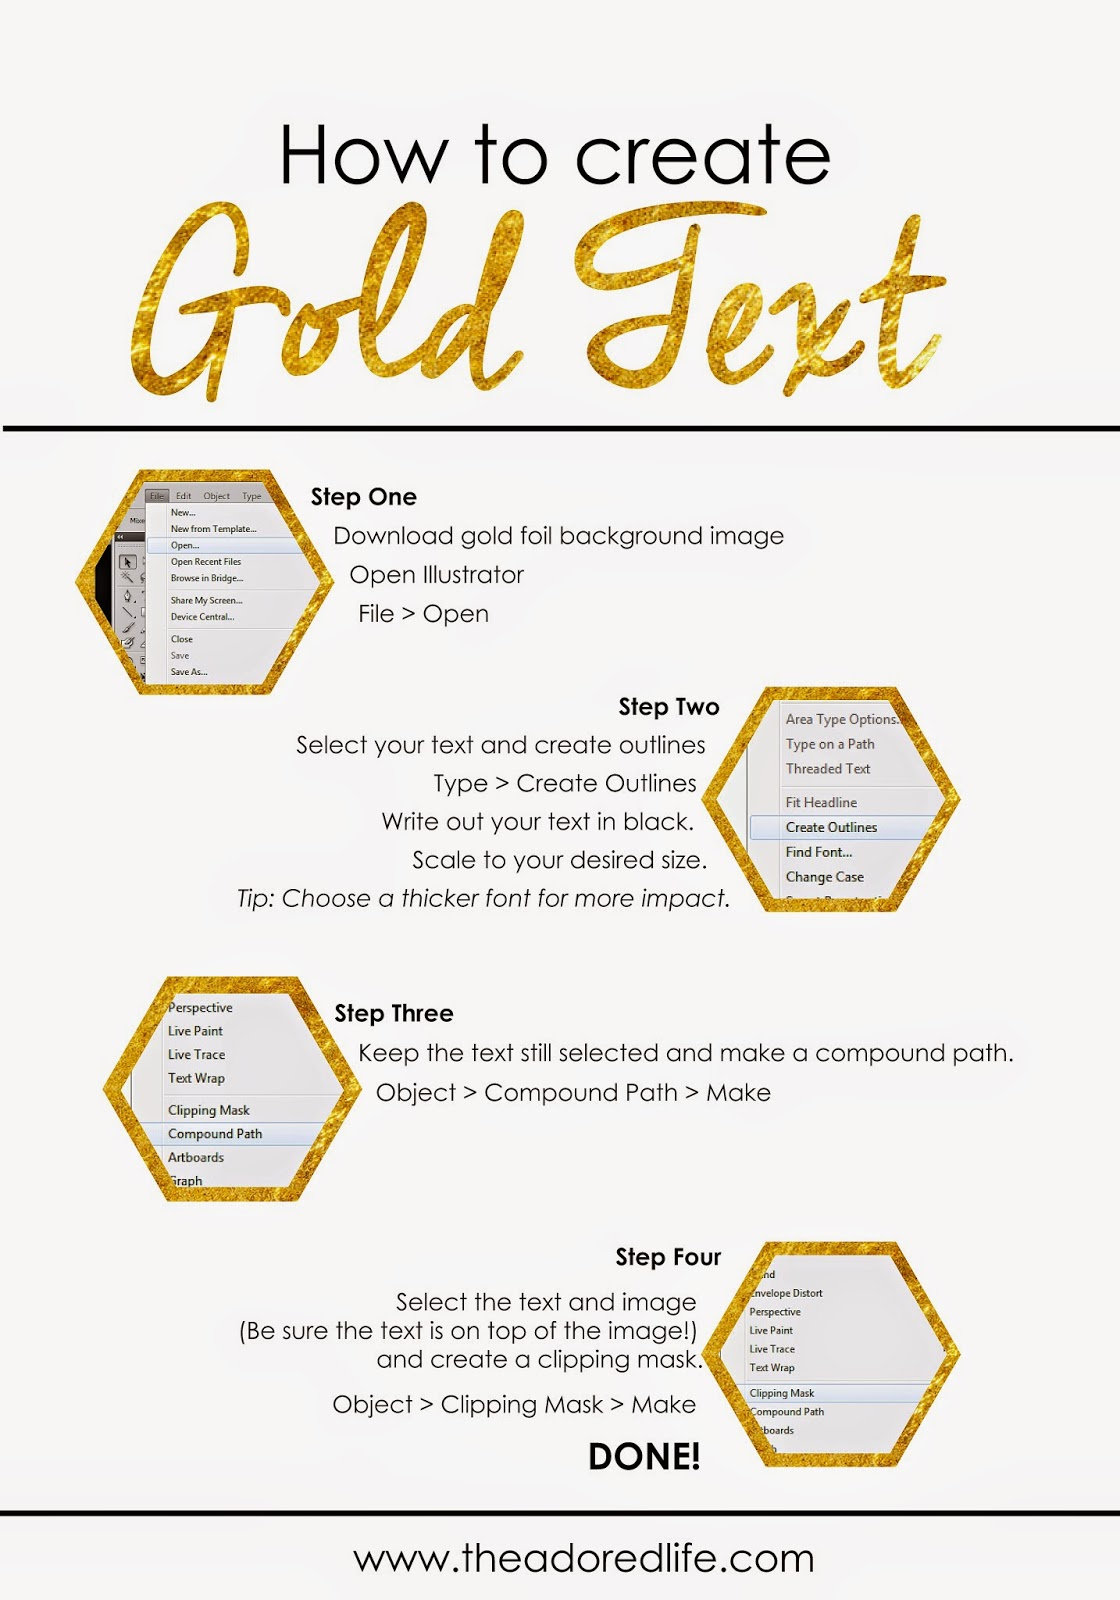 How To Create Gold Text // The Adored Life